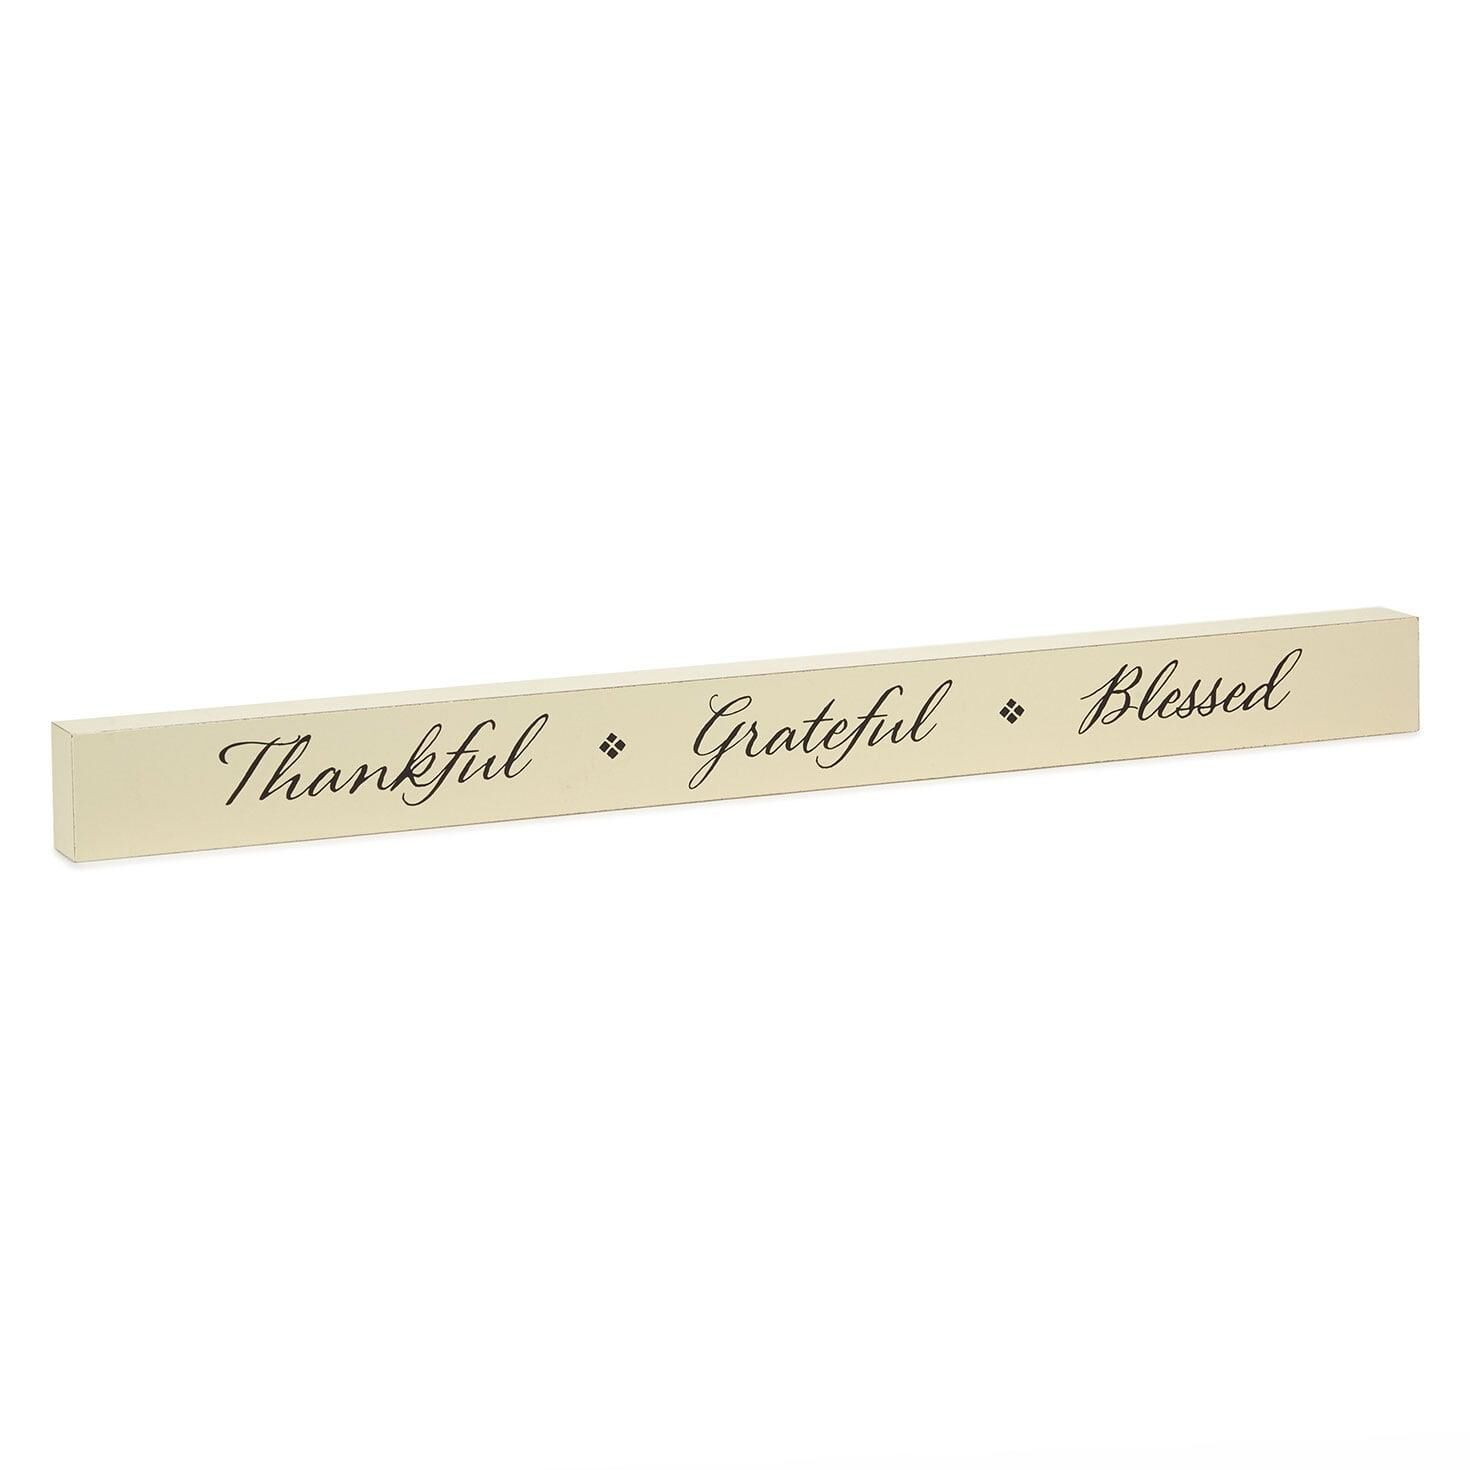 Thankful Grateful Blessed Wood Quote Sign 23 5x2 Plaques Signs Hallmark